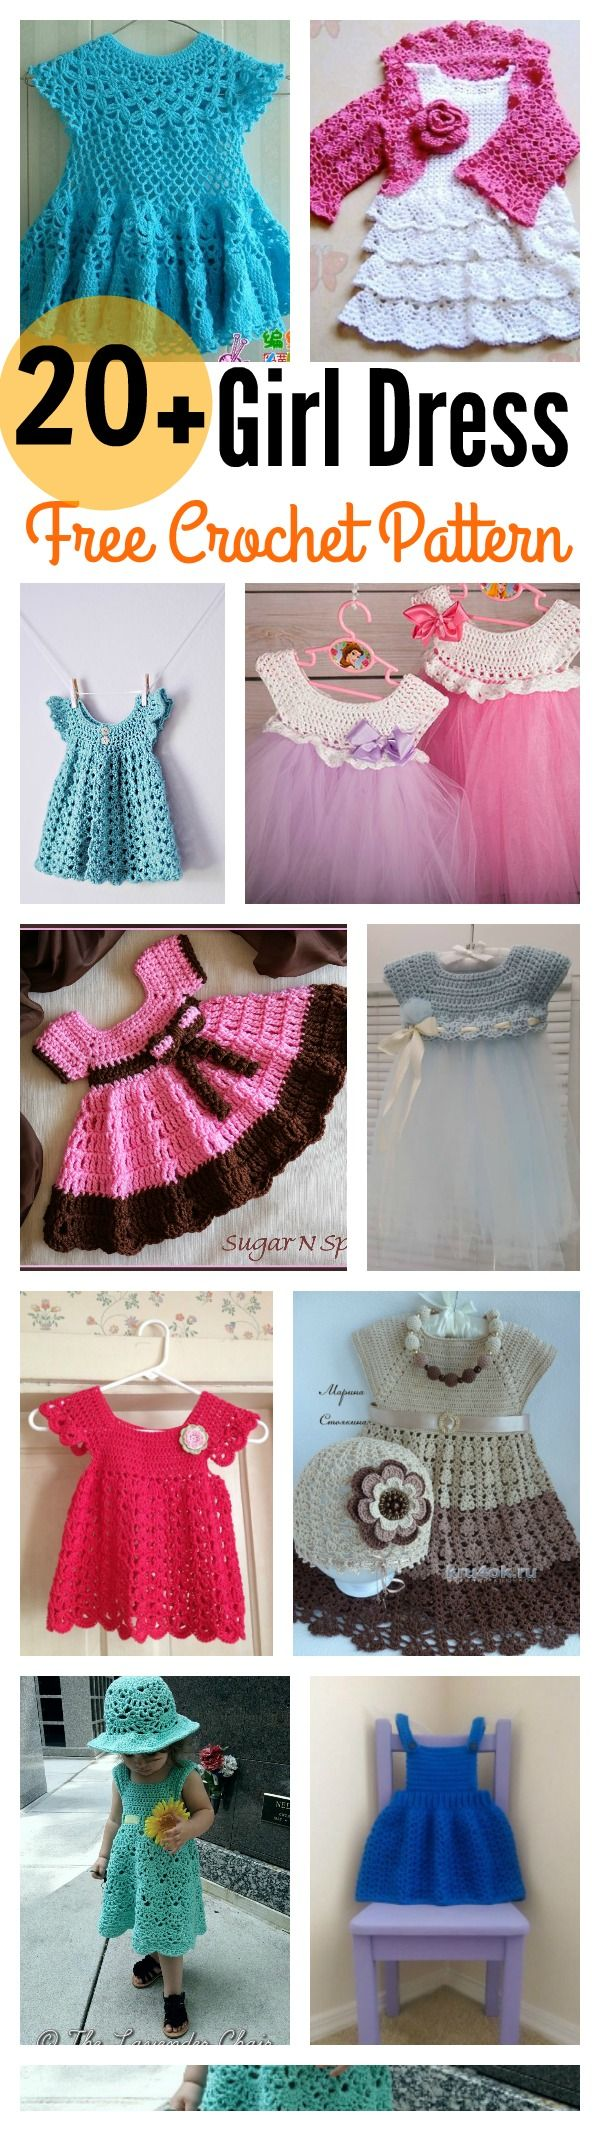 Beautiful crochet dresses for kids trendy - 20 Crochet Girl Dress With Free Pattern